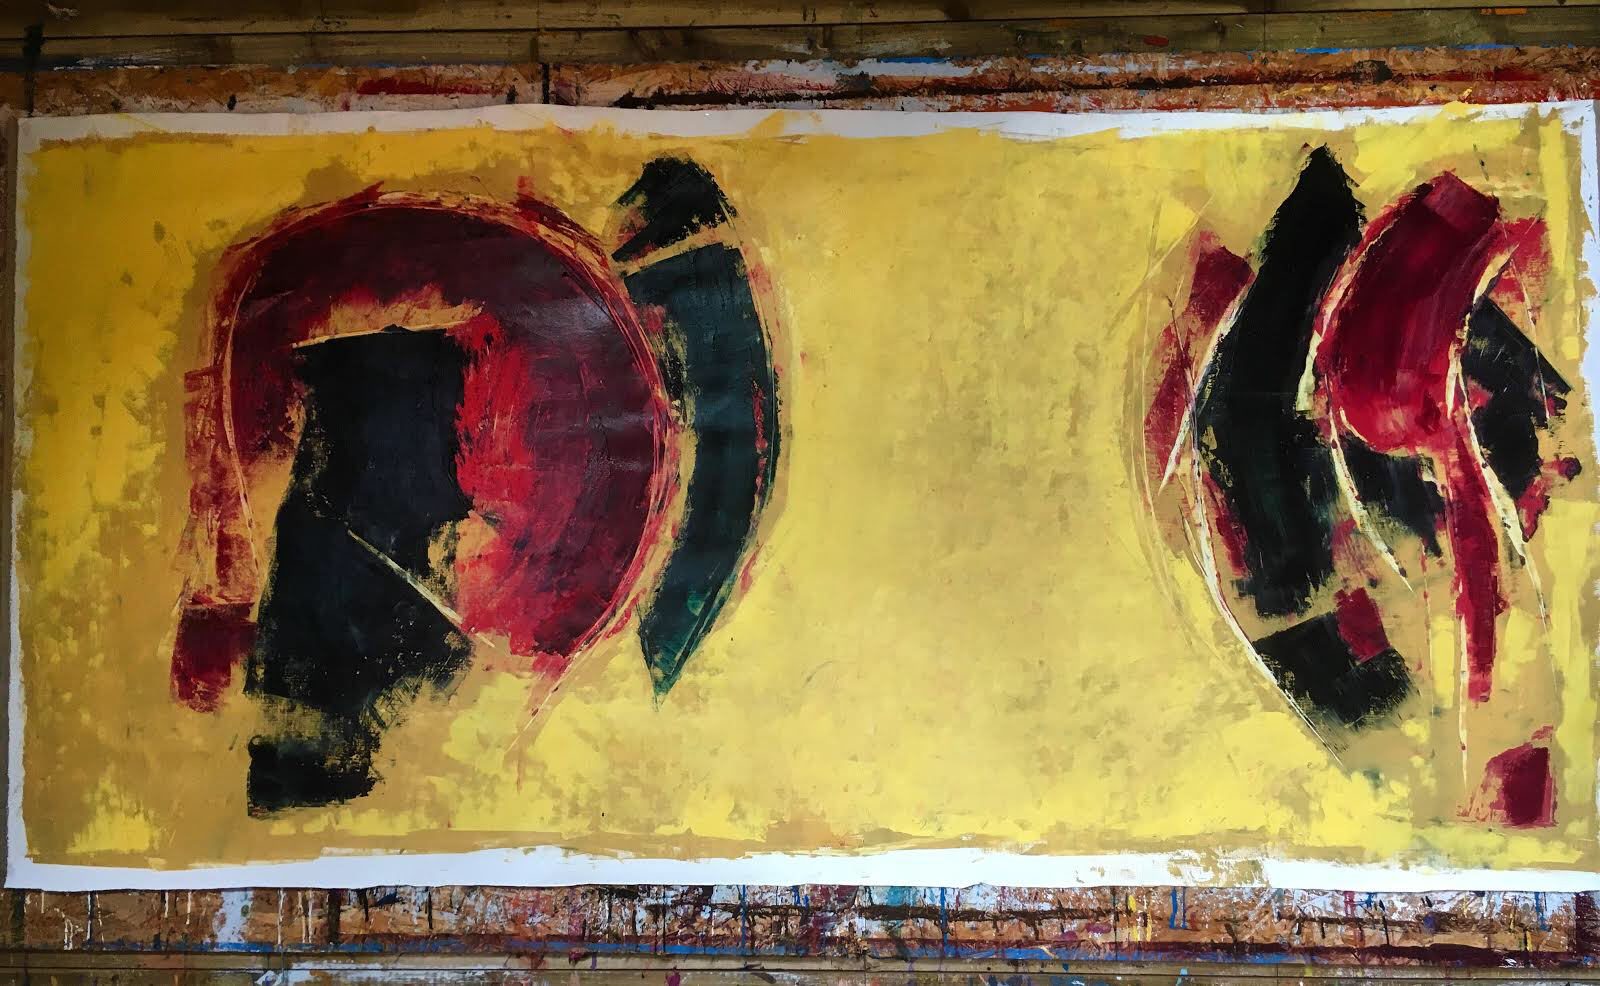 Face off, 100 x 250 cm approx. on unstretched linen, oil and cold wax.